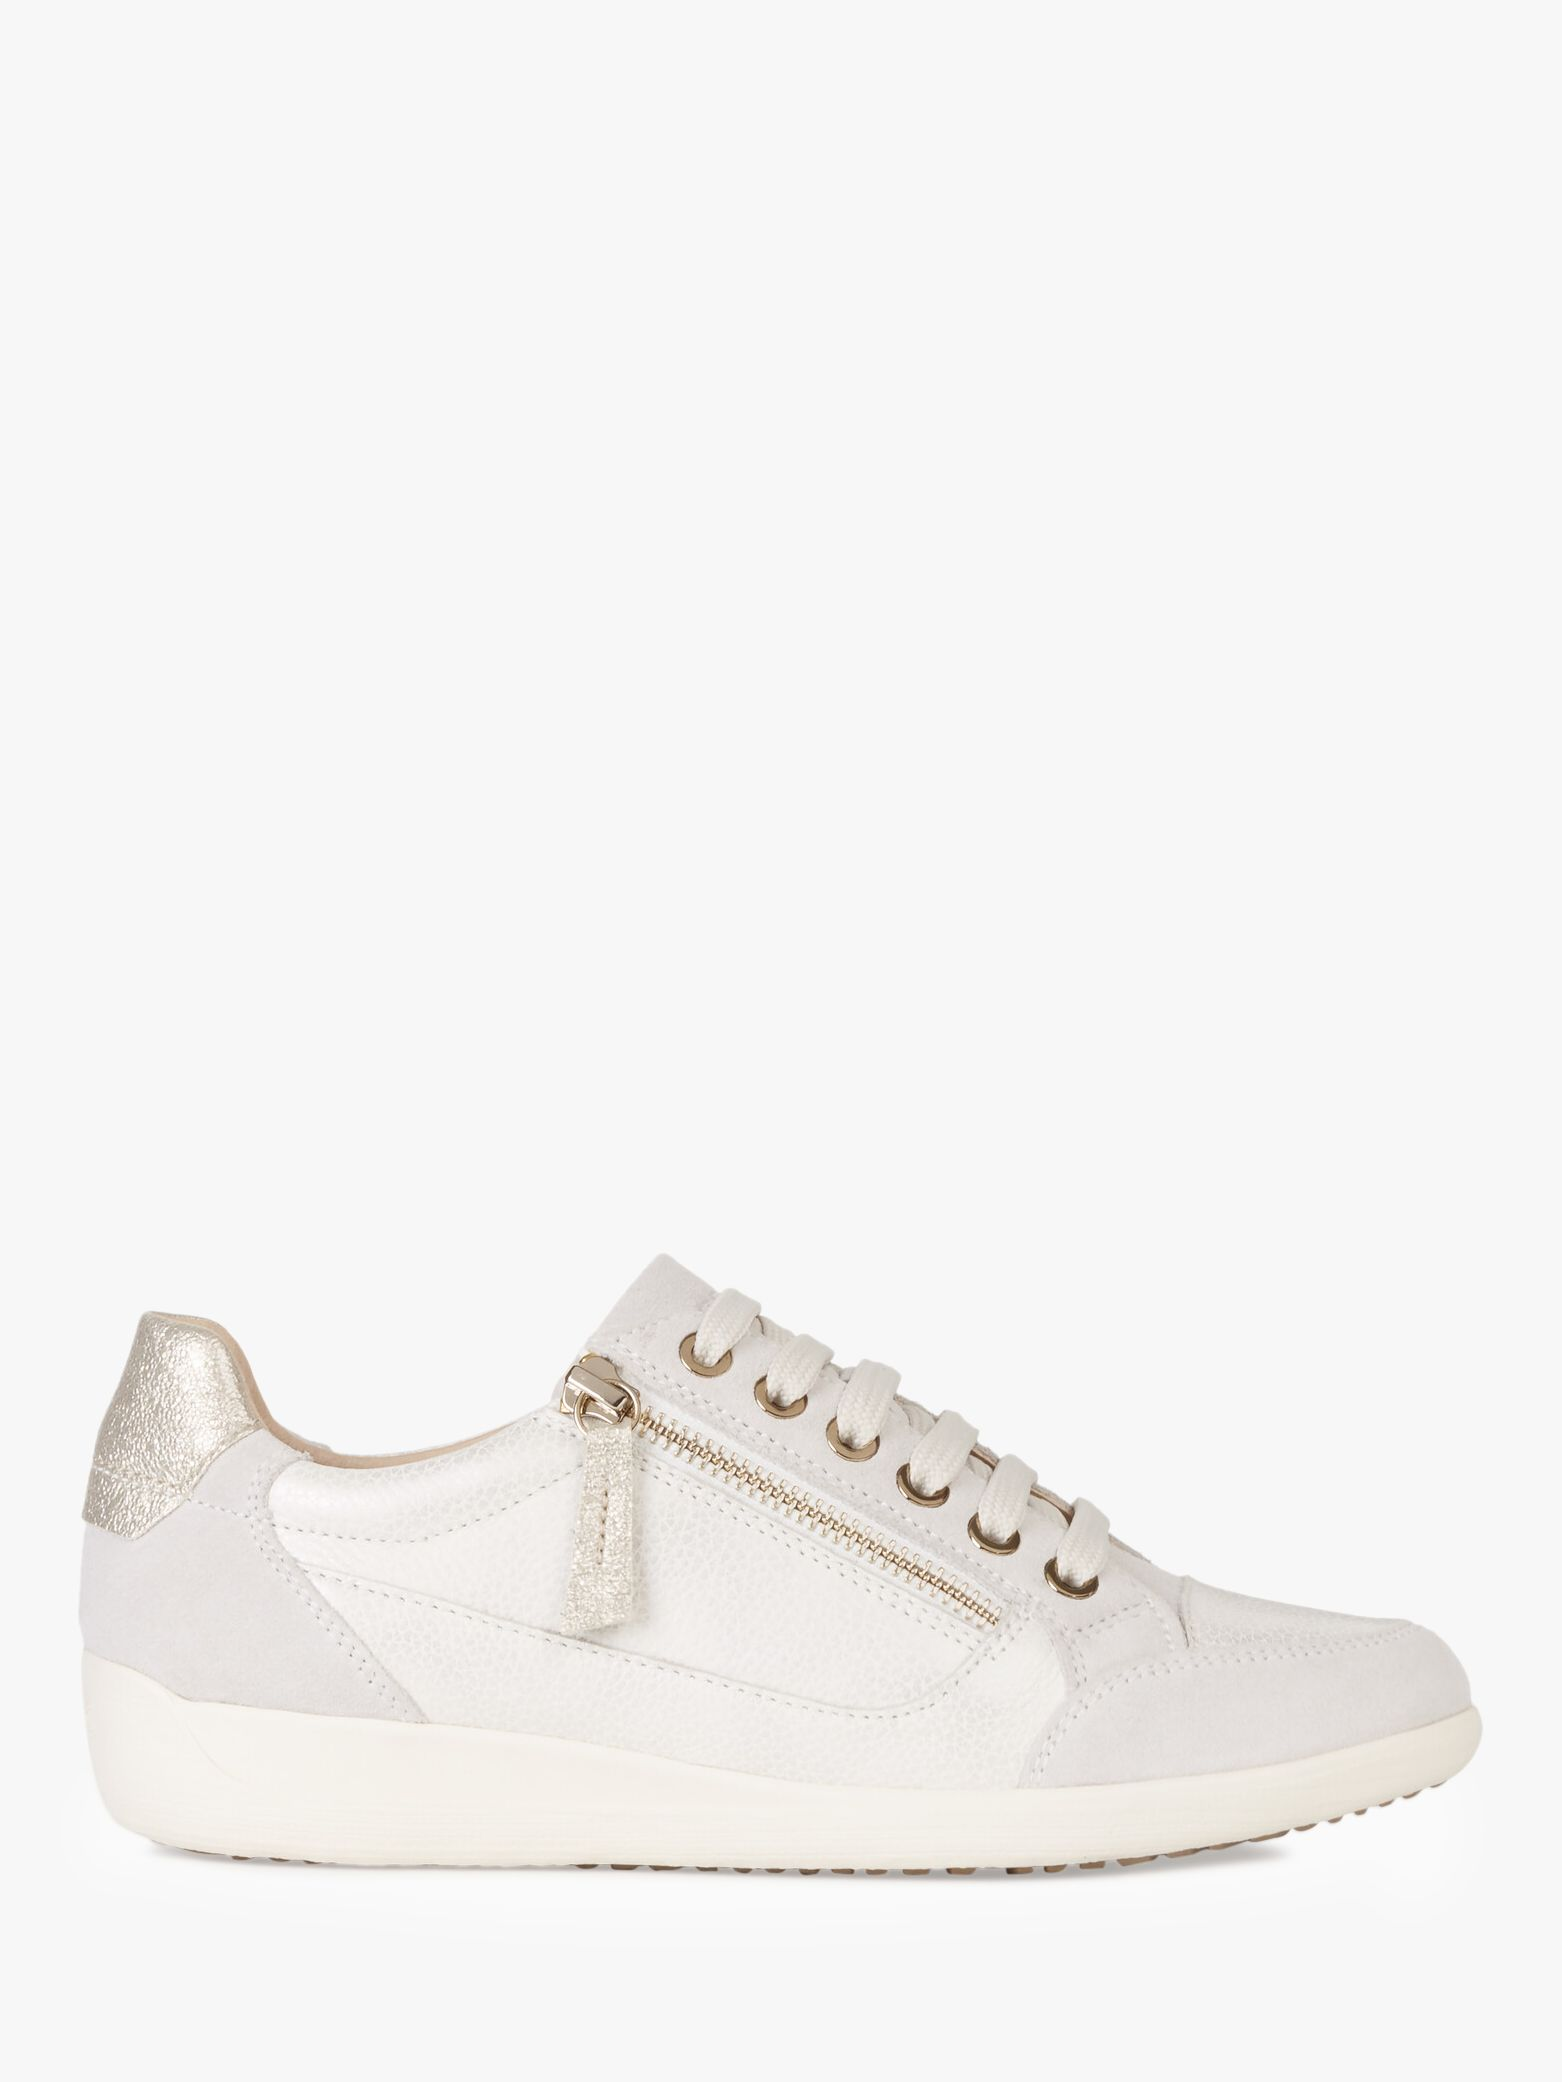 Geox Geox Women's Myria Suede Lace Up Trainers, Champagne